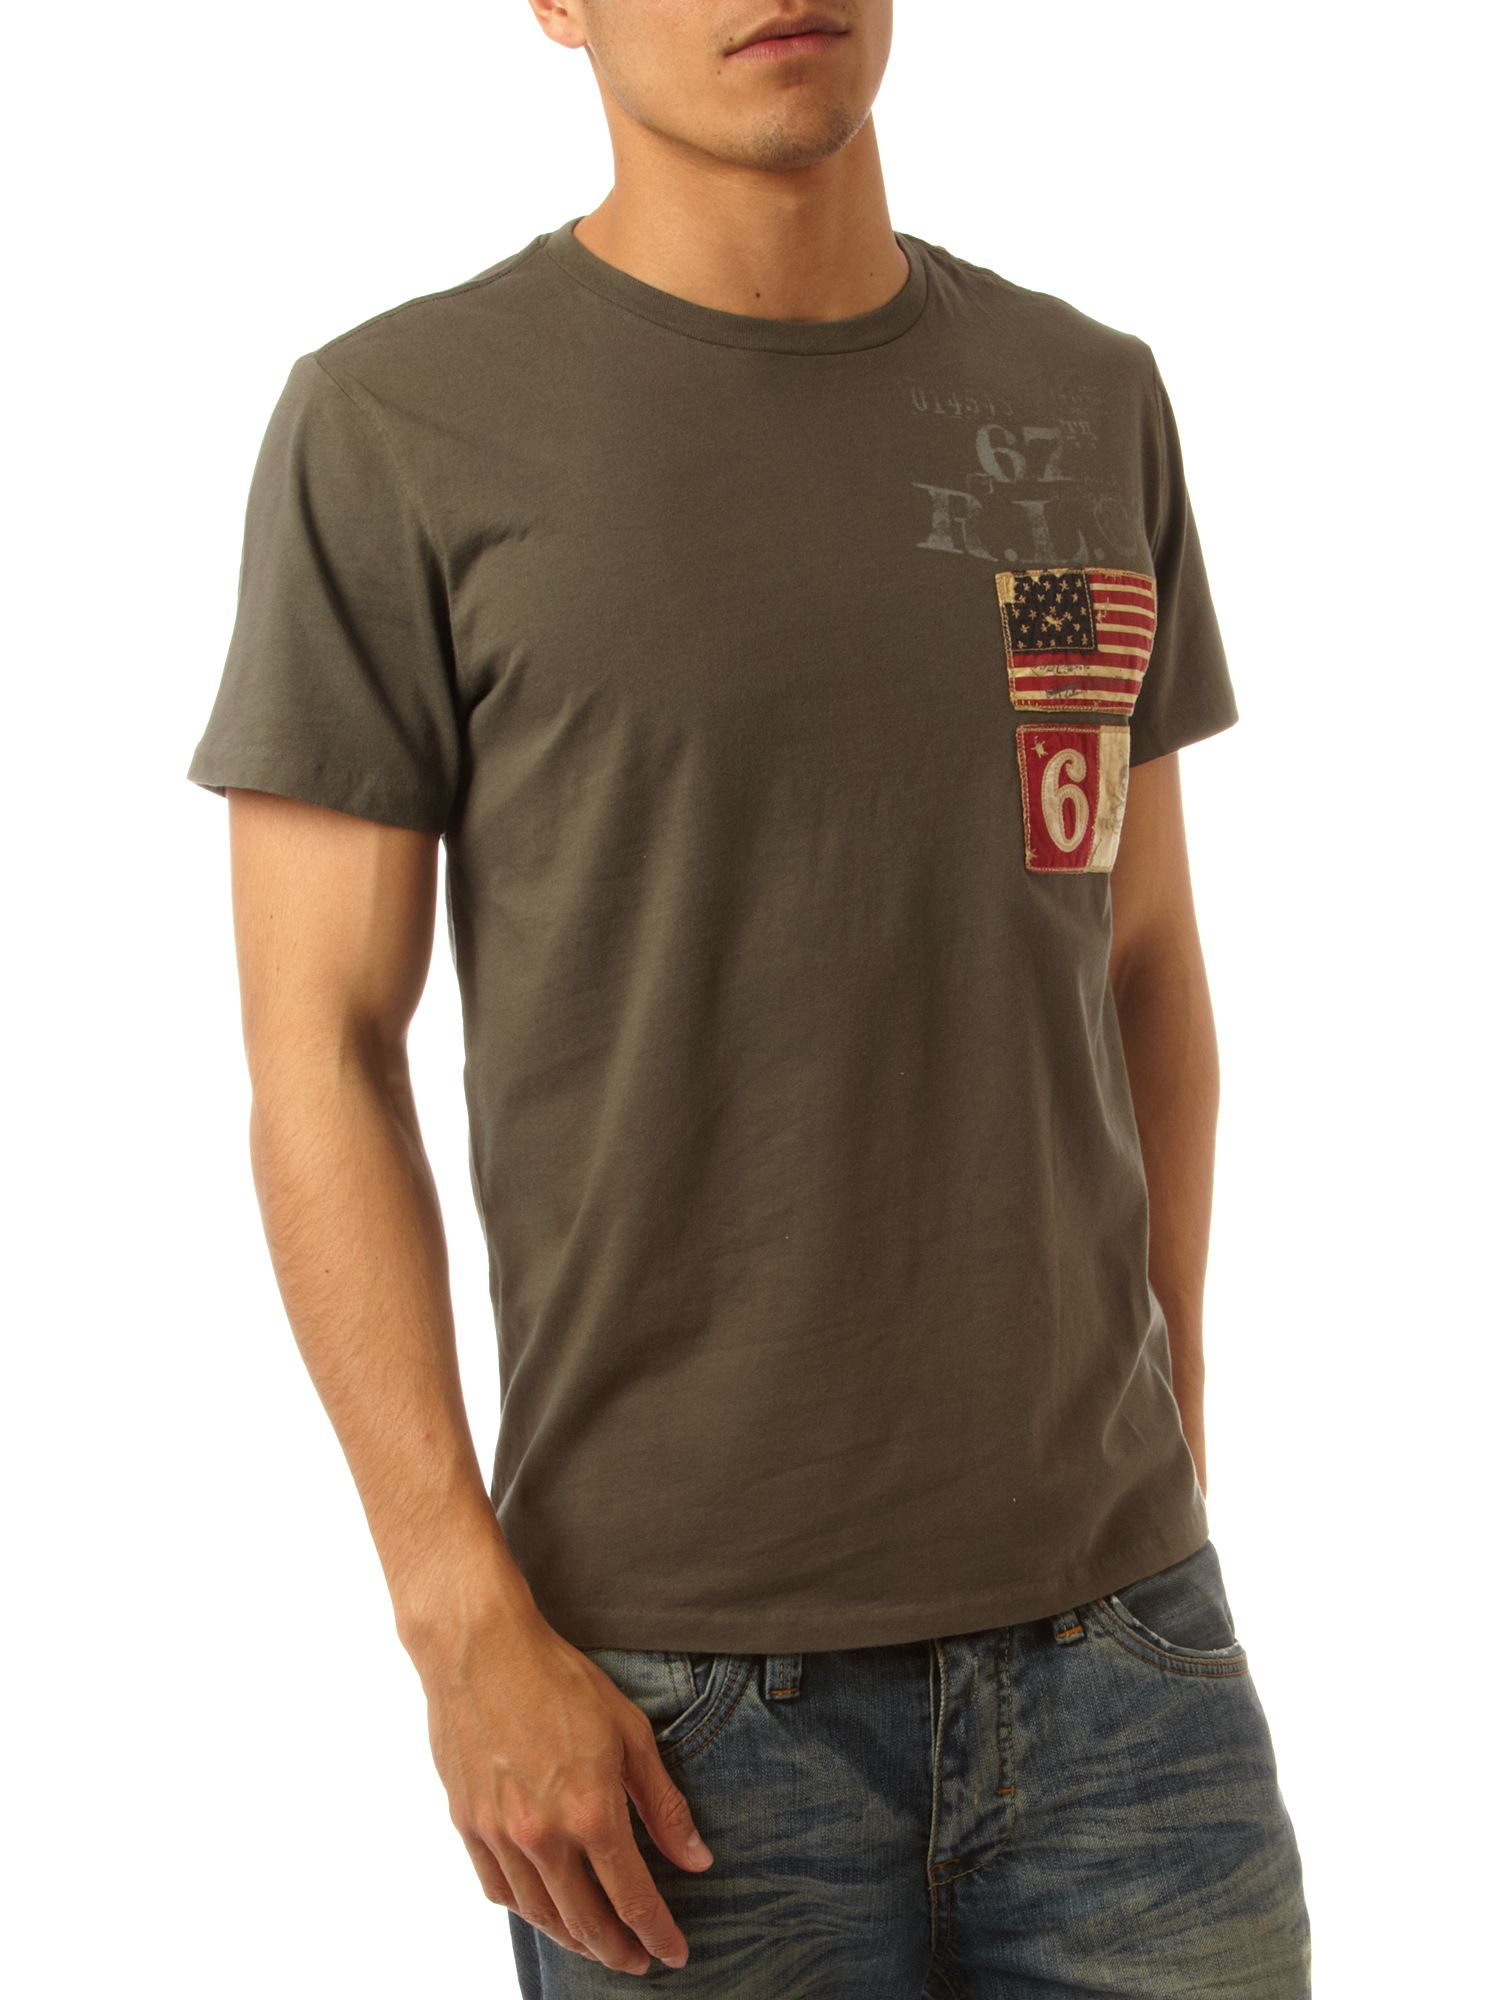 Polo Jeans Two flags T-shirt Grey product image